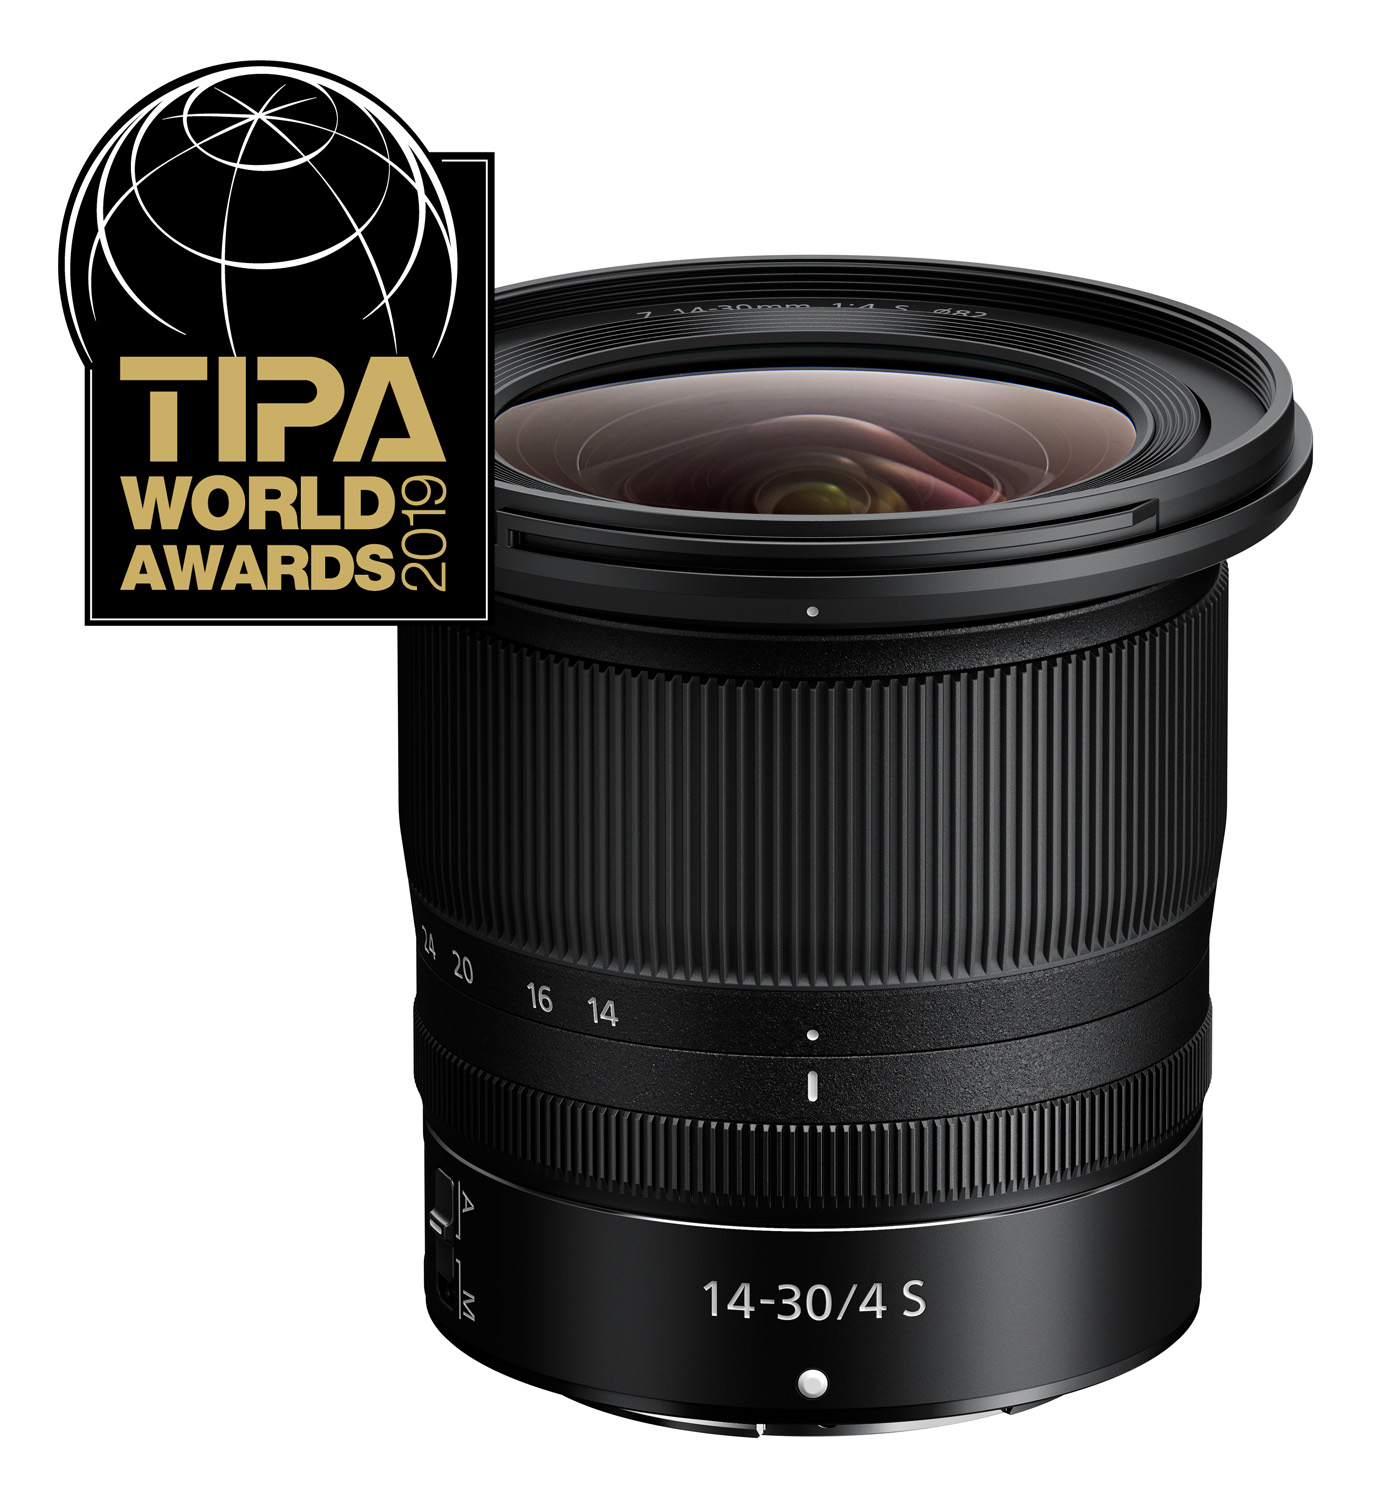 TIPA World Awards 2019 – Nikkor Z 14–30 mm f/4 S – Best Mirrorless Wide Angle Zoom Lens